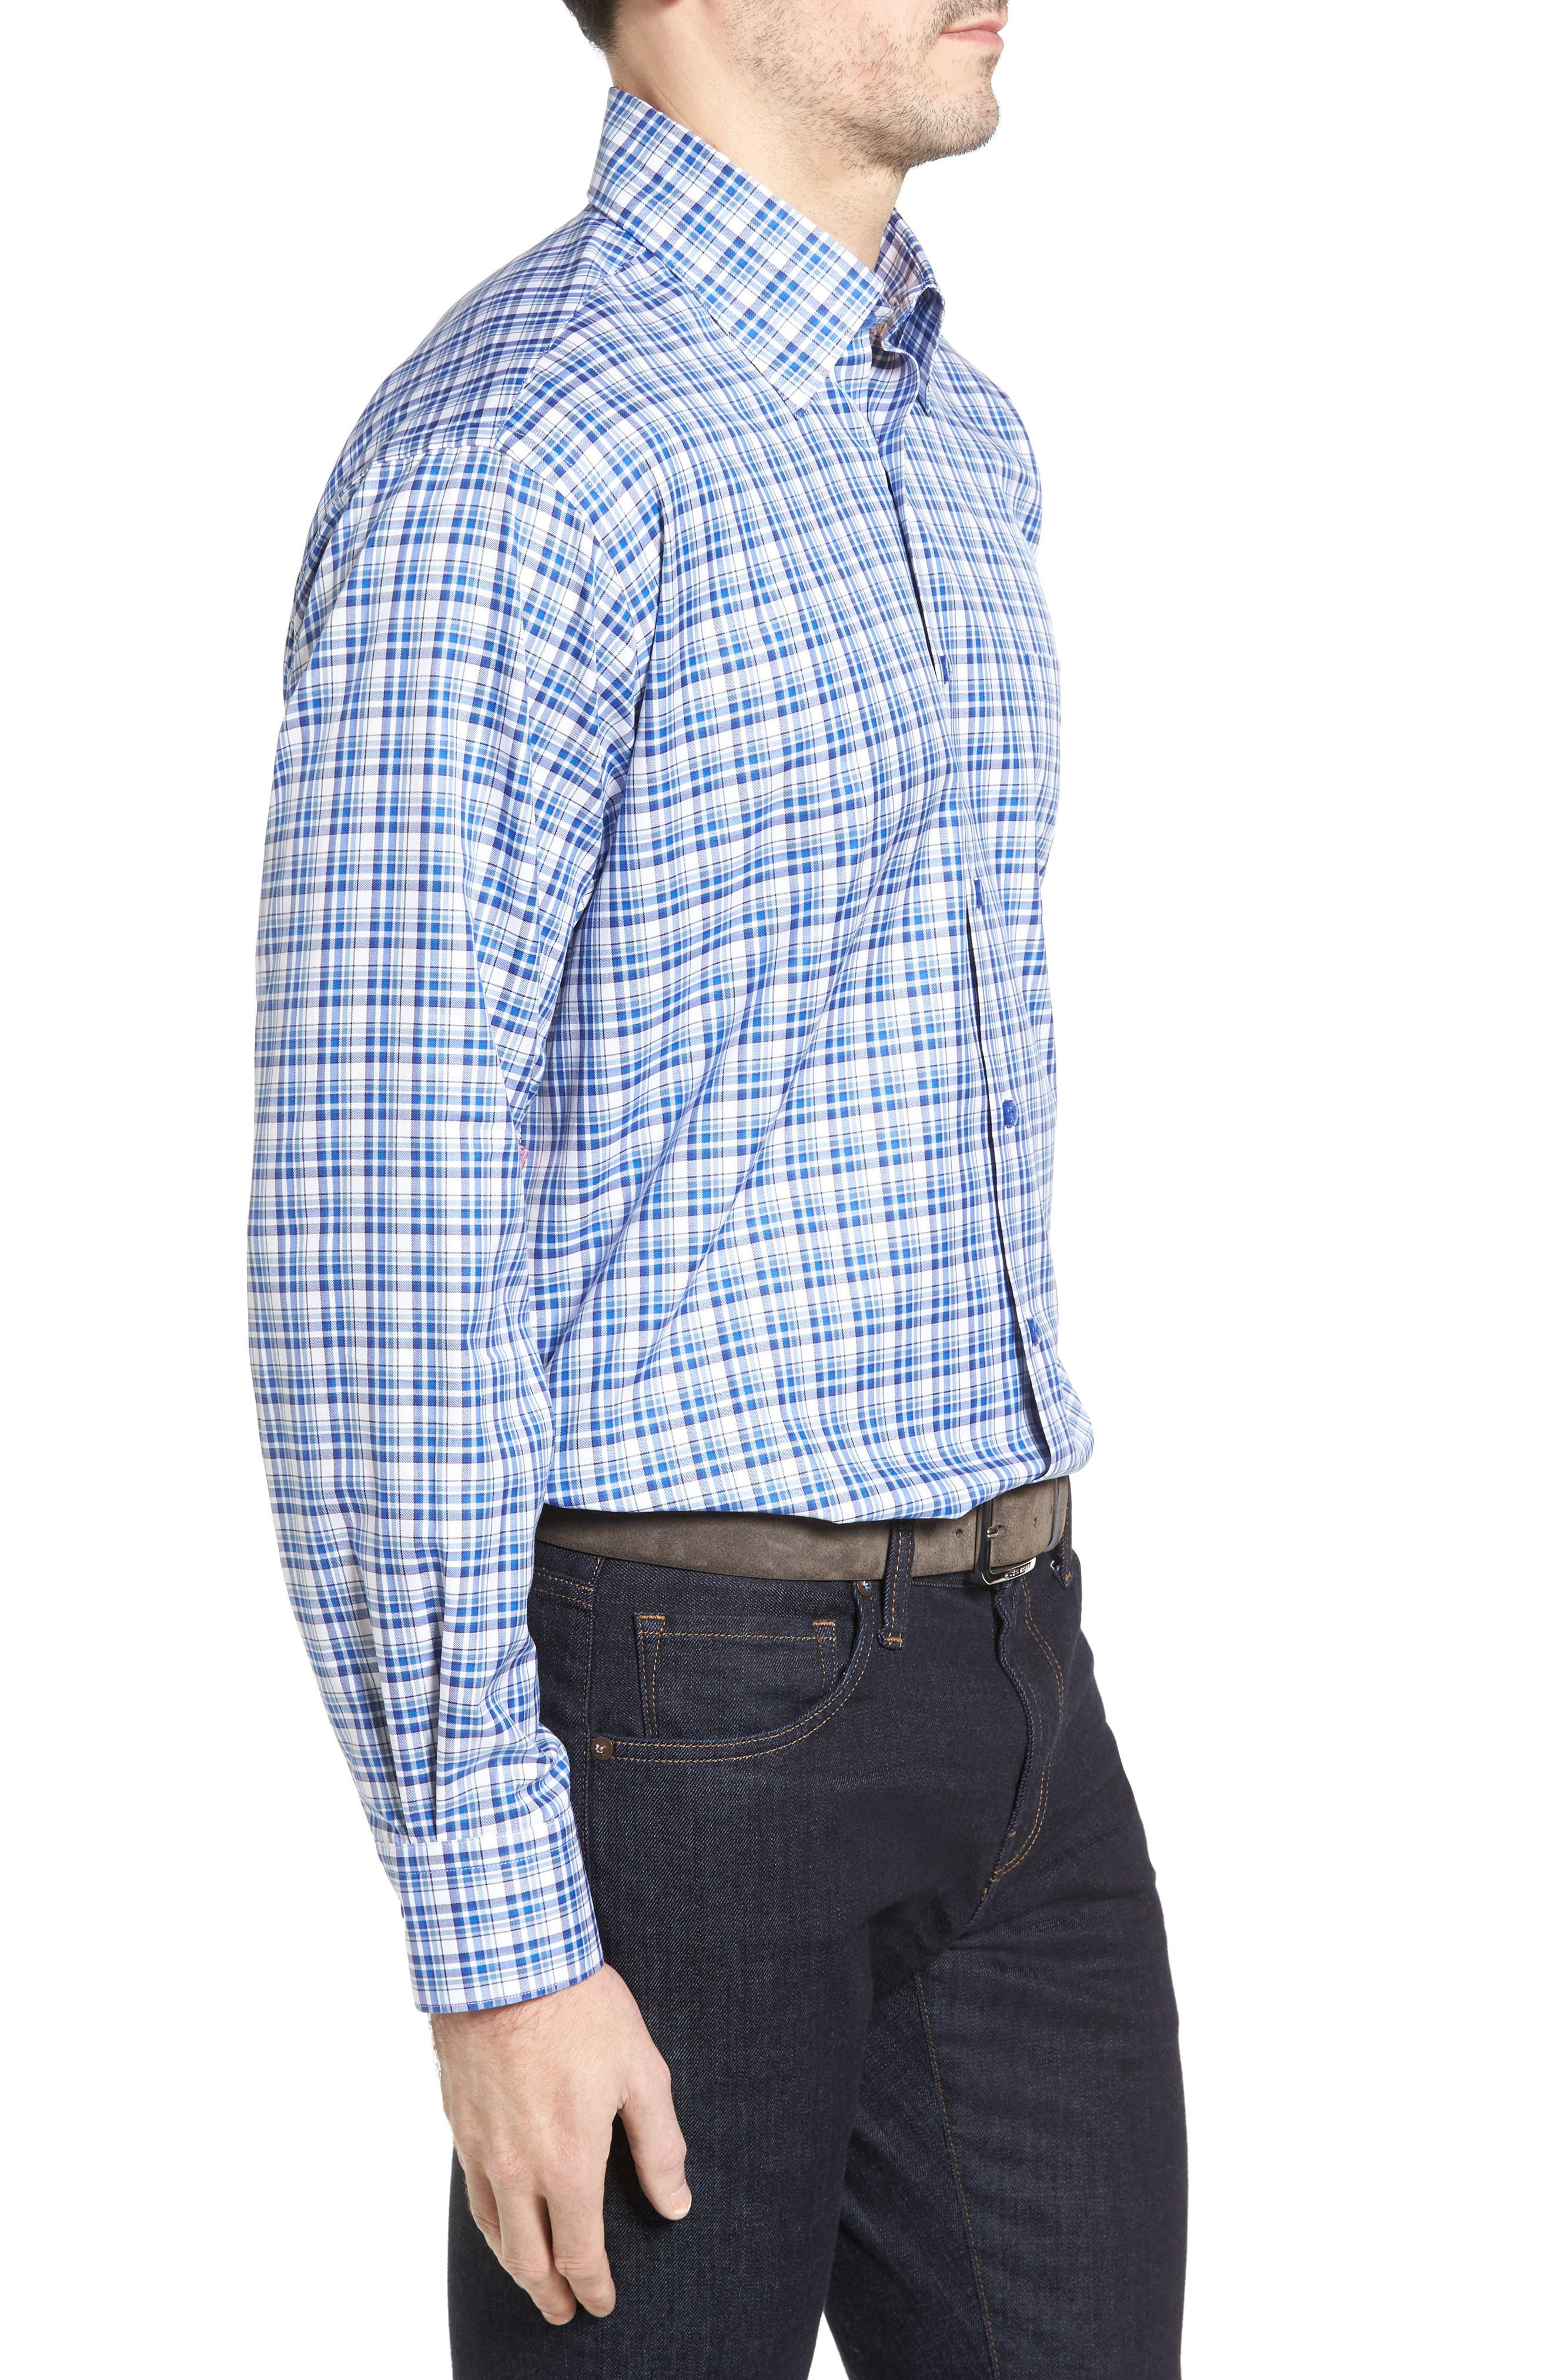 Anderson Classic Fit Plaid Micro Twill Sport Shirt,                             Alternate thumbnail 3, color,                             Pacific